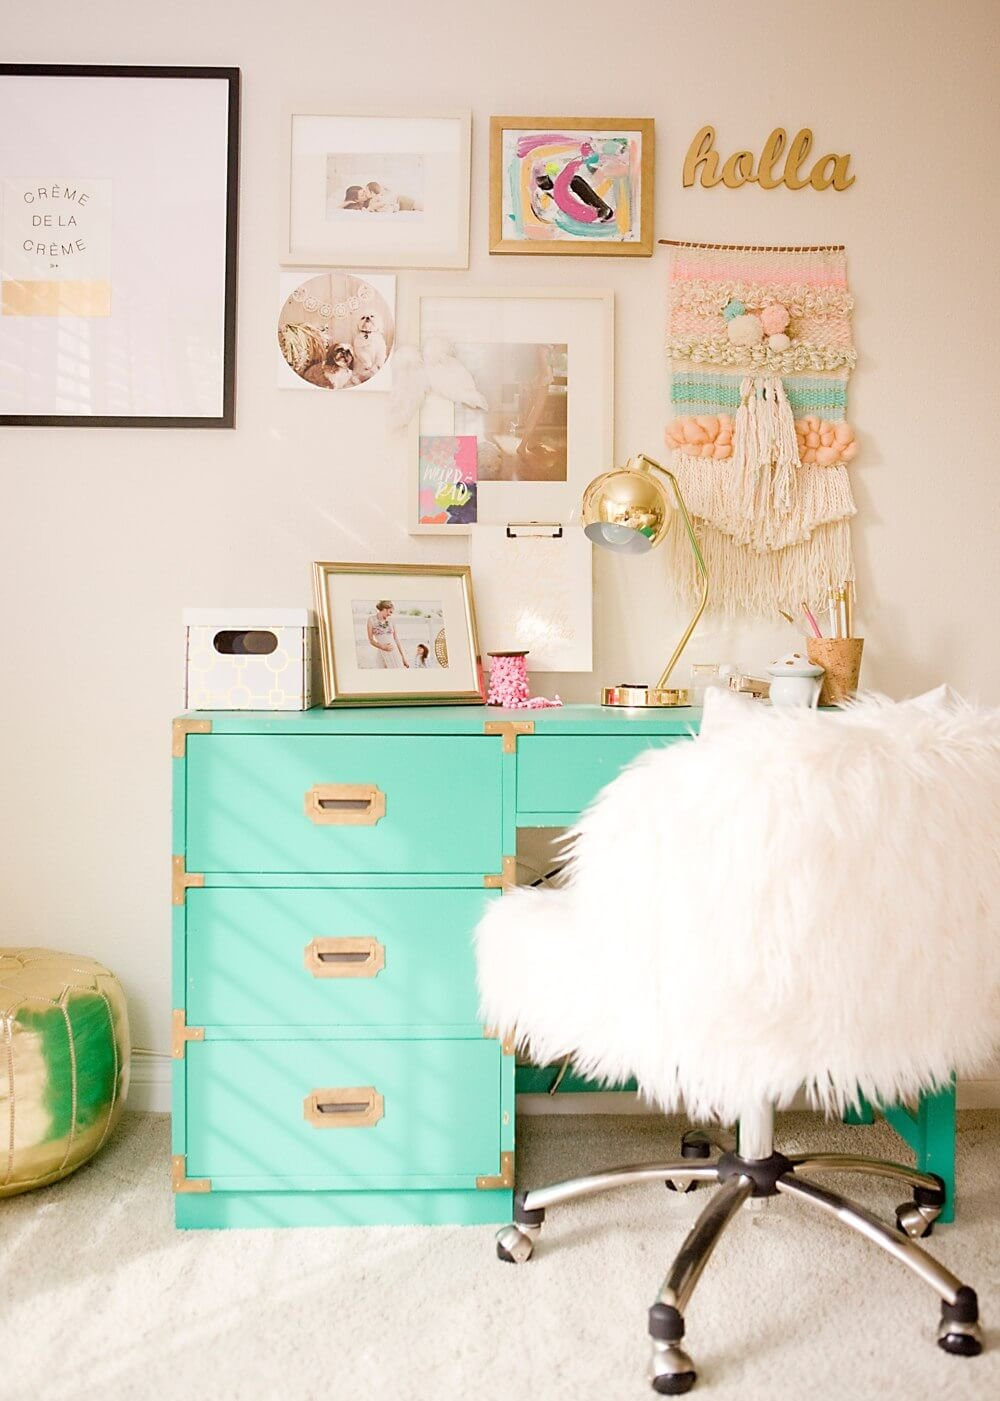 Amazing cheap ways to decorate a teenage girl's bedroom